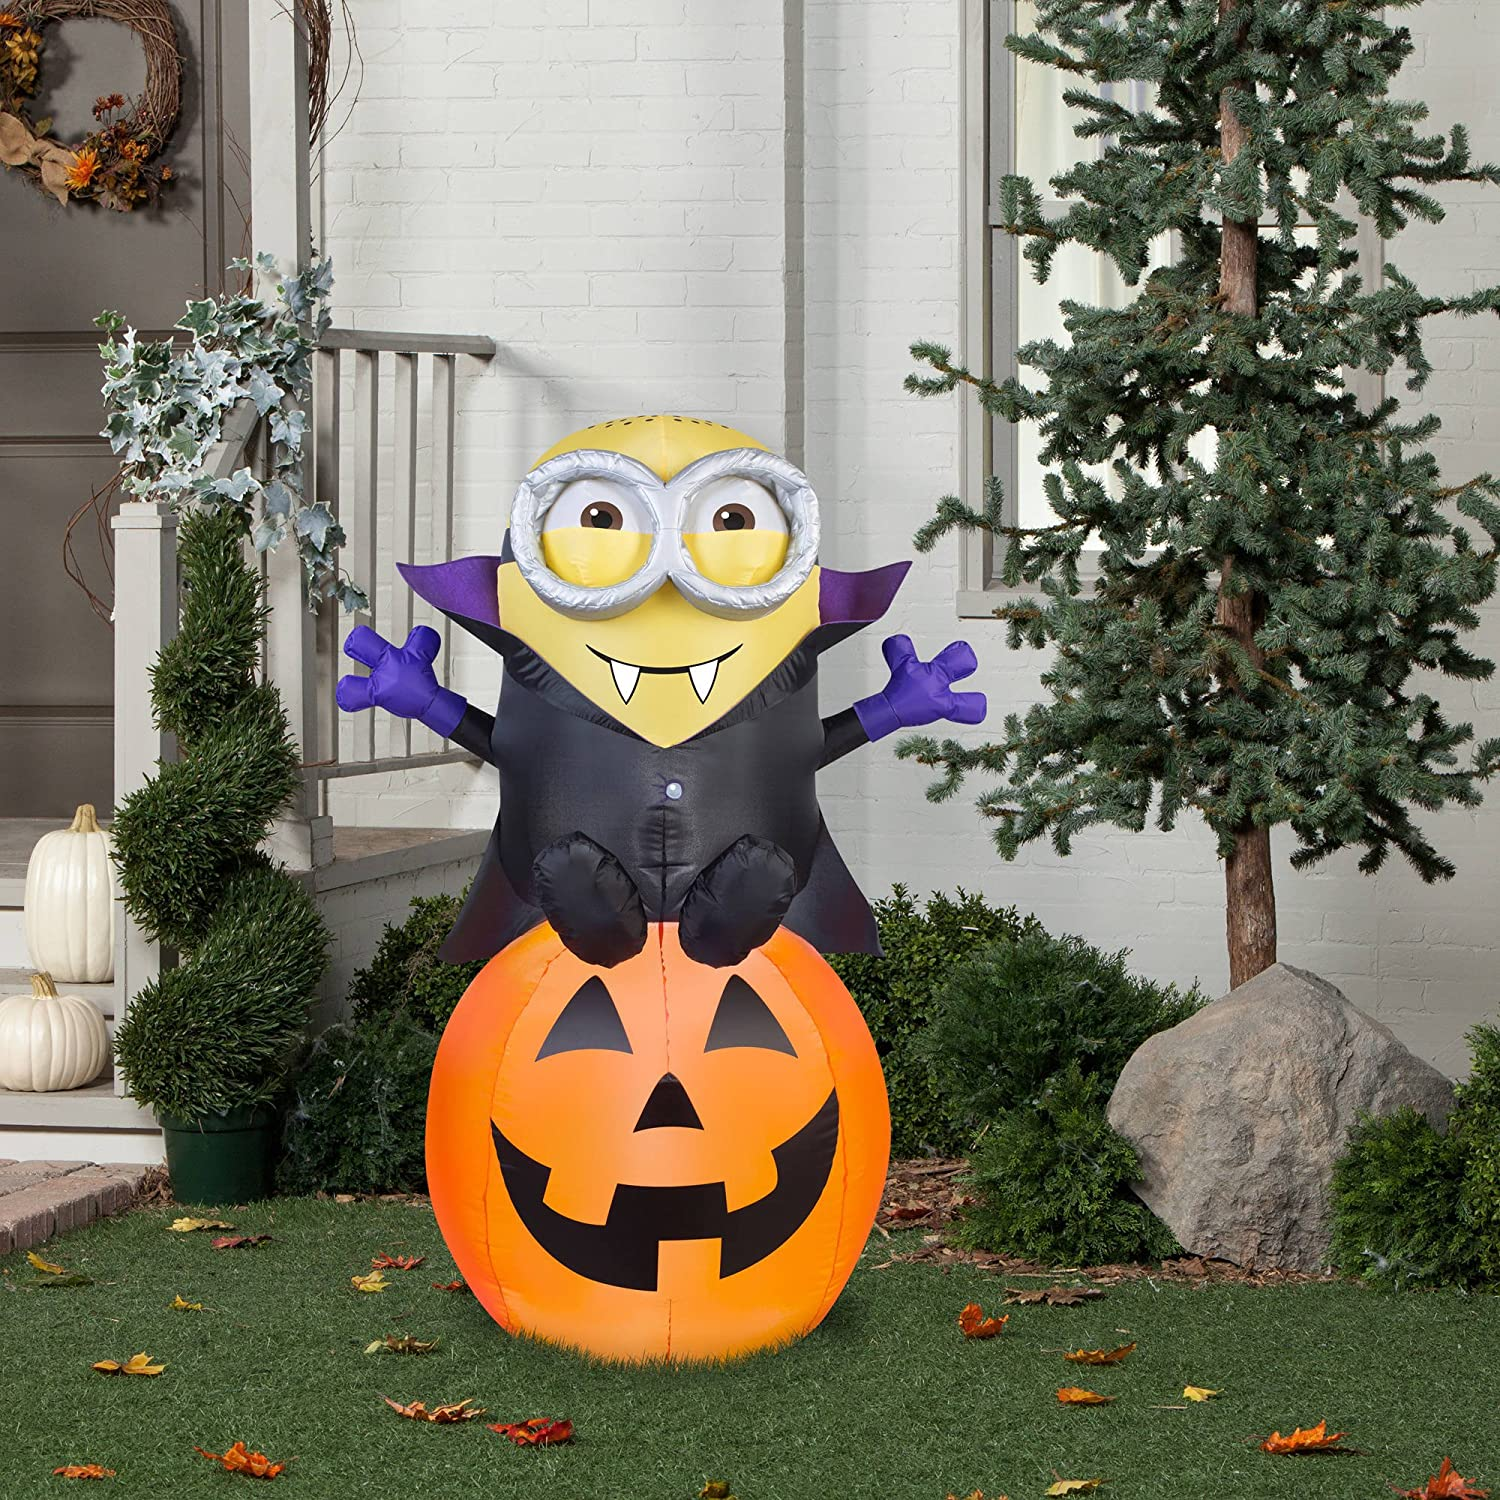 amazon com halloween inflatable 5 vampire minion bob on pumpkin - Outdoor Halloween Decorations On Sale